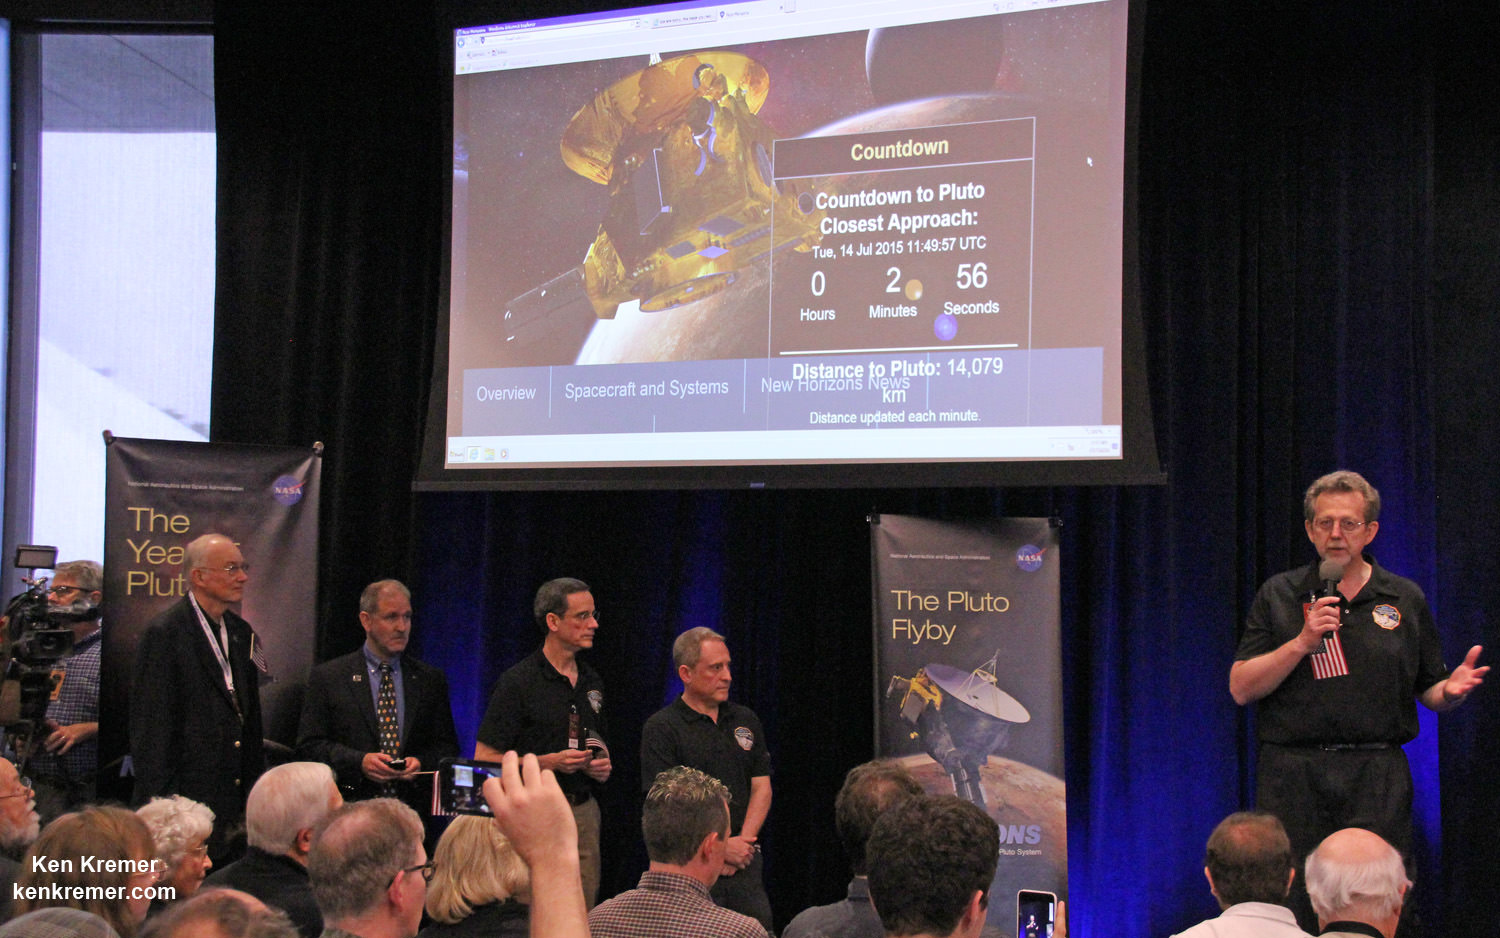 Counting down to less than 3 minutes from New Horizons closest approach to Pluto, Jim Green, NASA Planetary Science Division Director, addresses the team, guests and media on Tuesday, July 14, 2015 at the Johns Hopkins University Applied Physics Laboratory (APL) in Laurel, Maryland. Credit: Ken Kremer/kenkremer.com